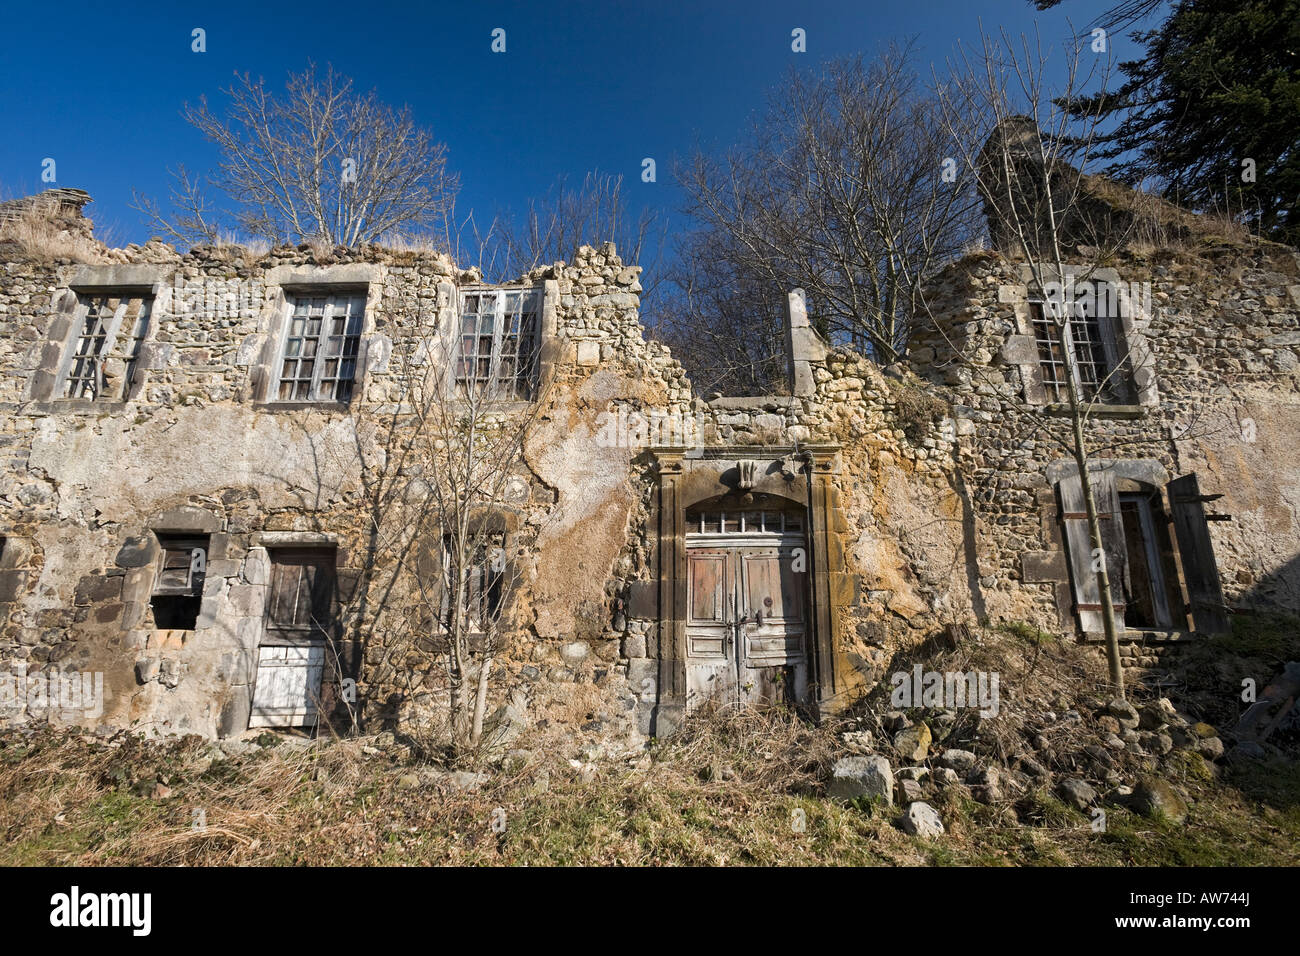 a ruined house in orcival puy de d me france maison en ruine stock photo royalty free. Black Bedroom Furniture Sets. Home Design Ideas